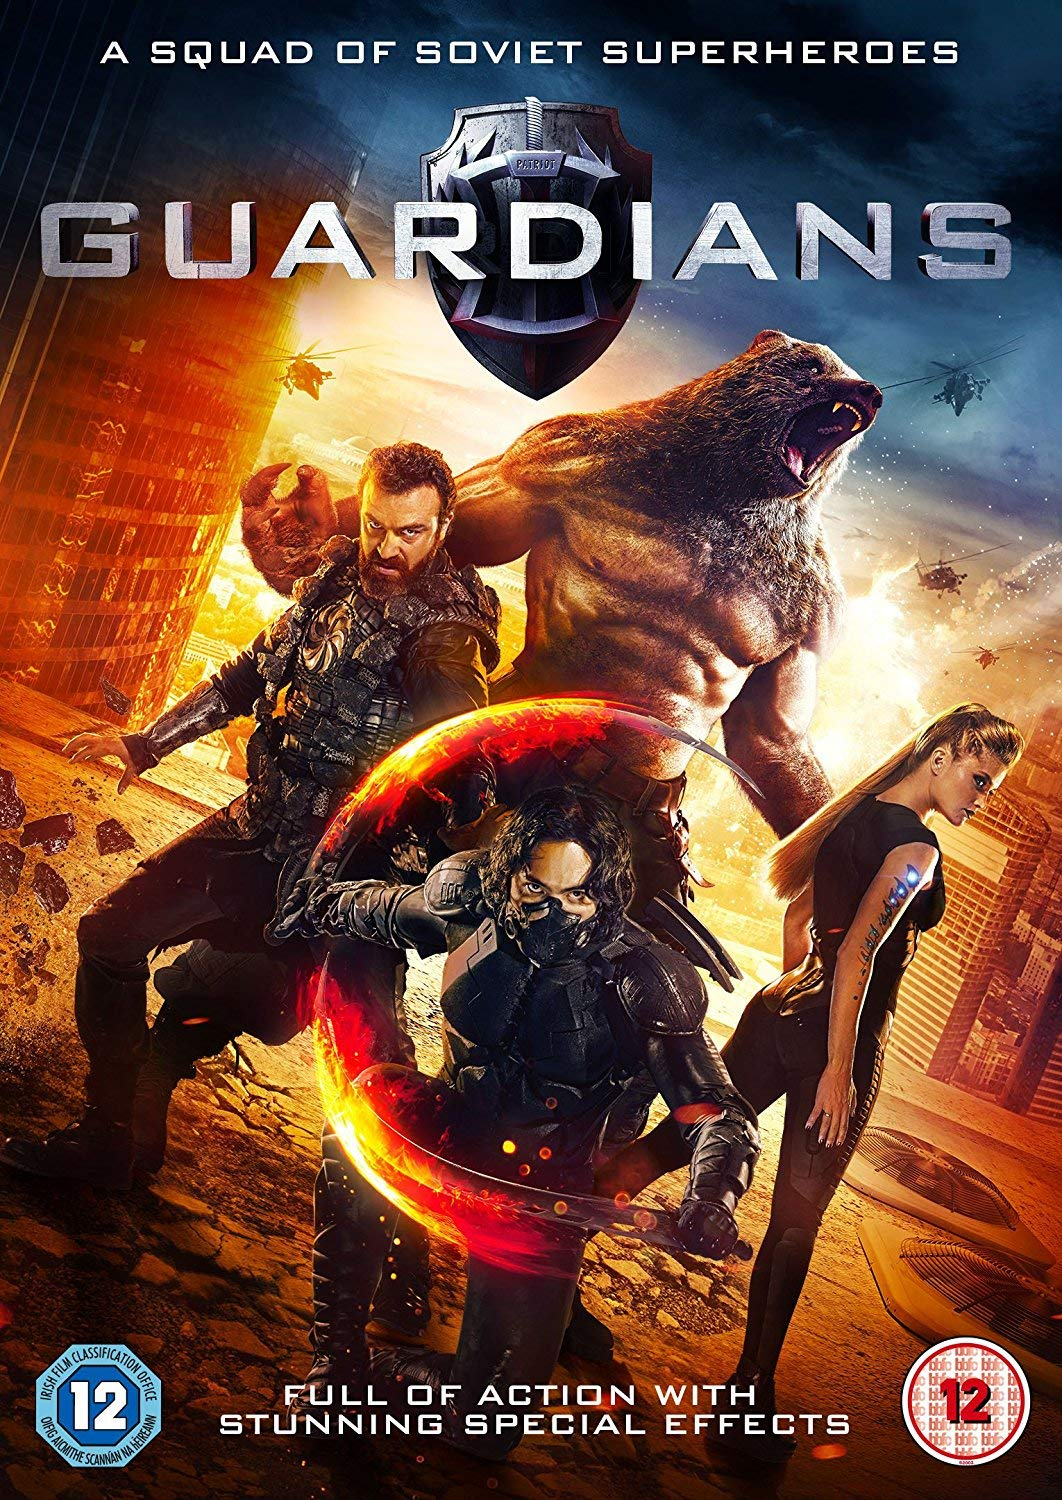 Guardians The Superheroes (2017) WebRip Hindi 1080p – 720p – DD5.1 – x264 – ESub